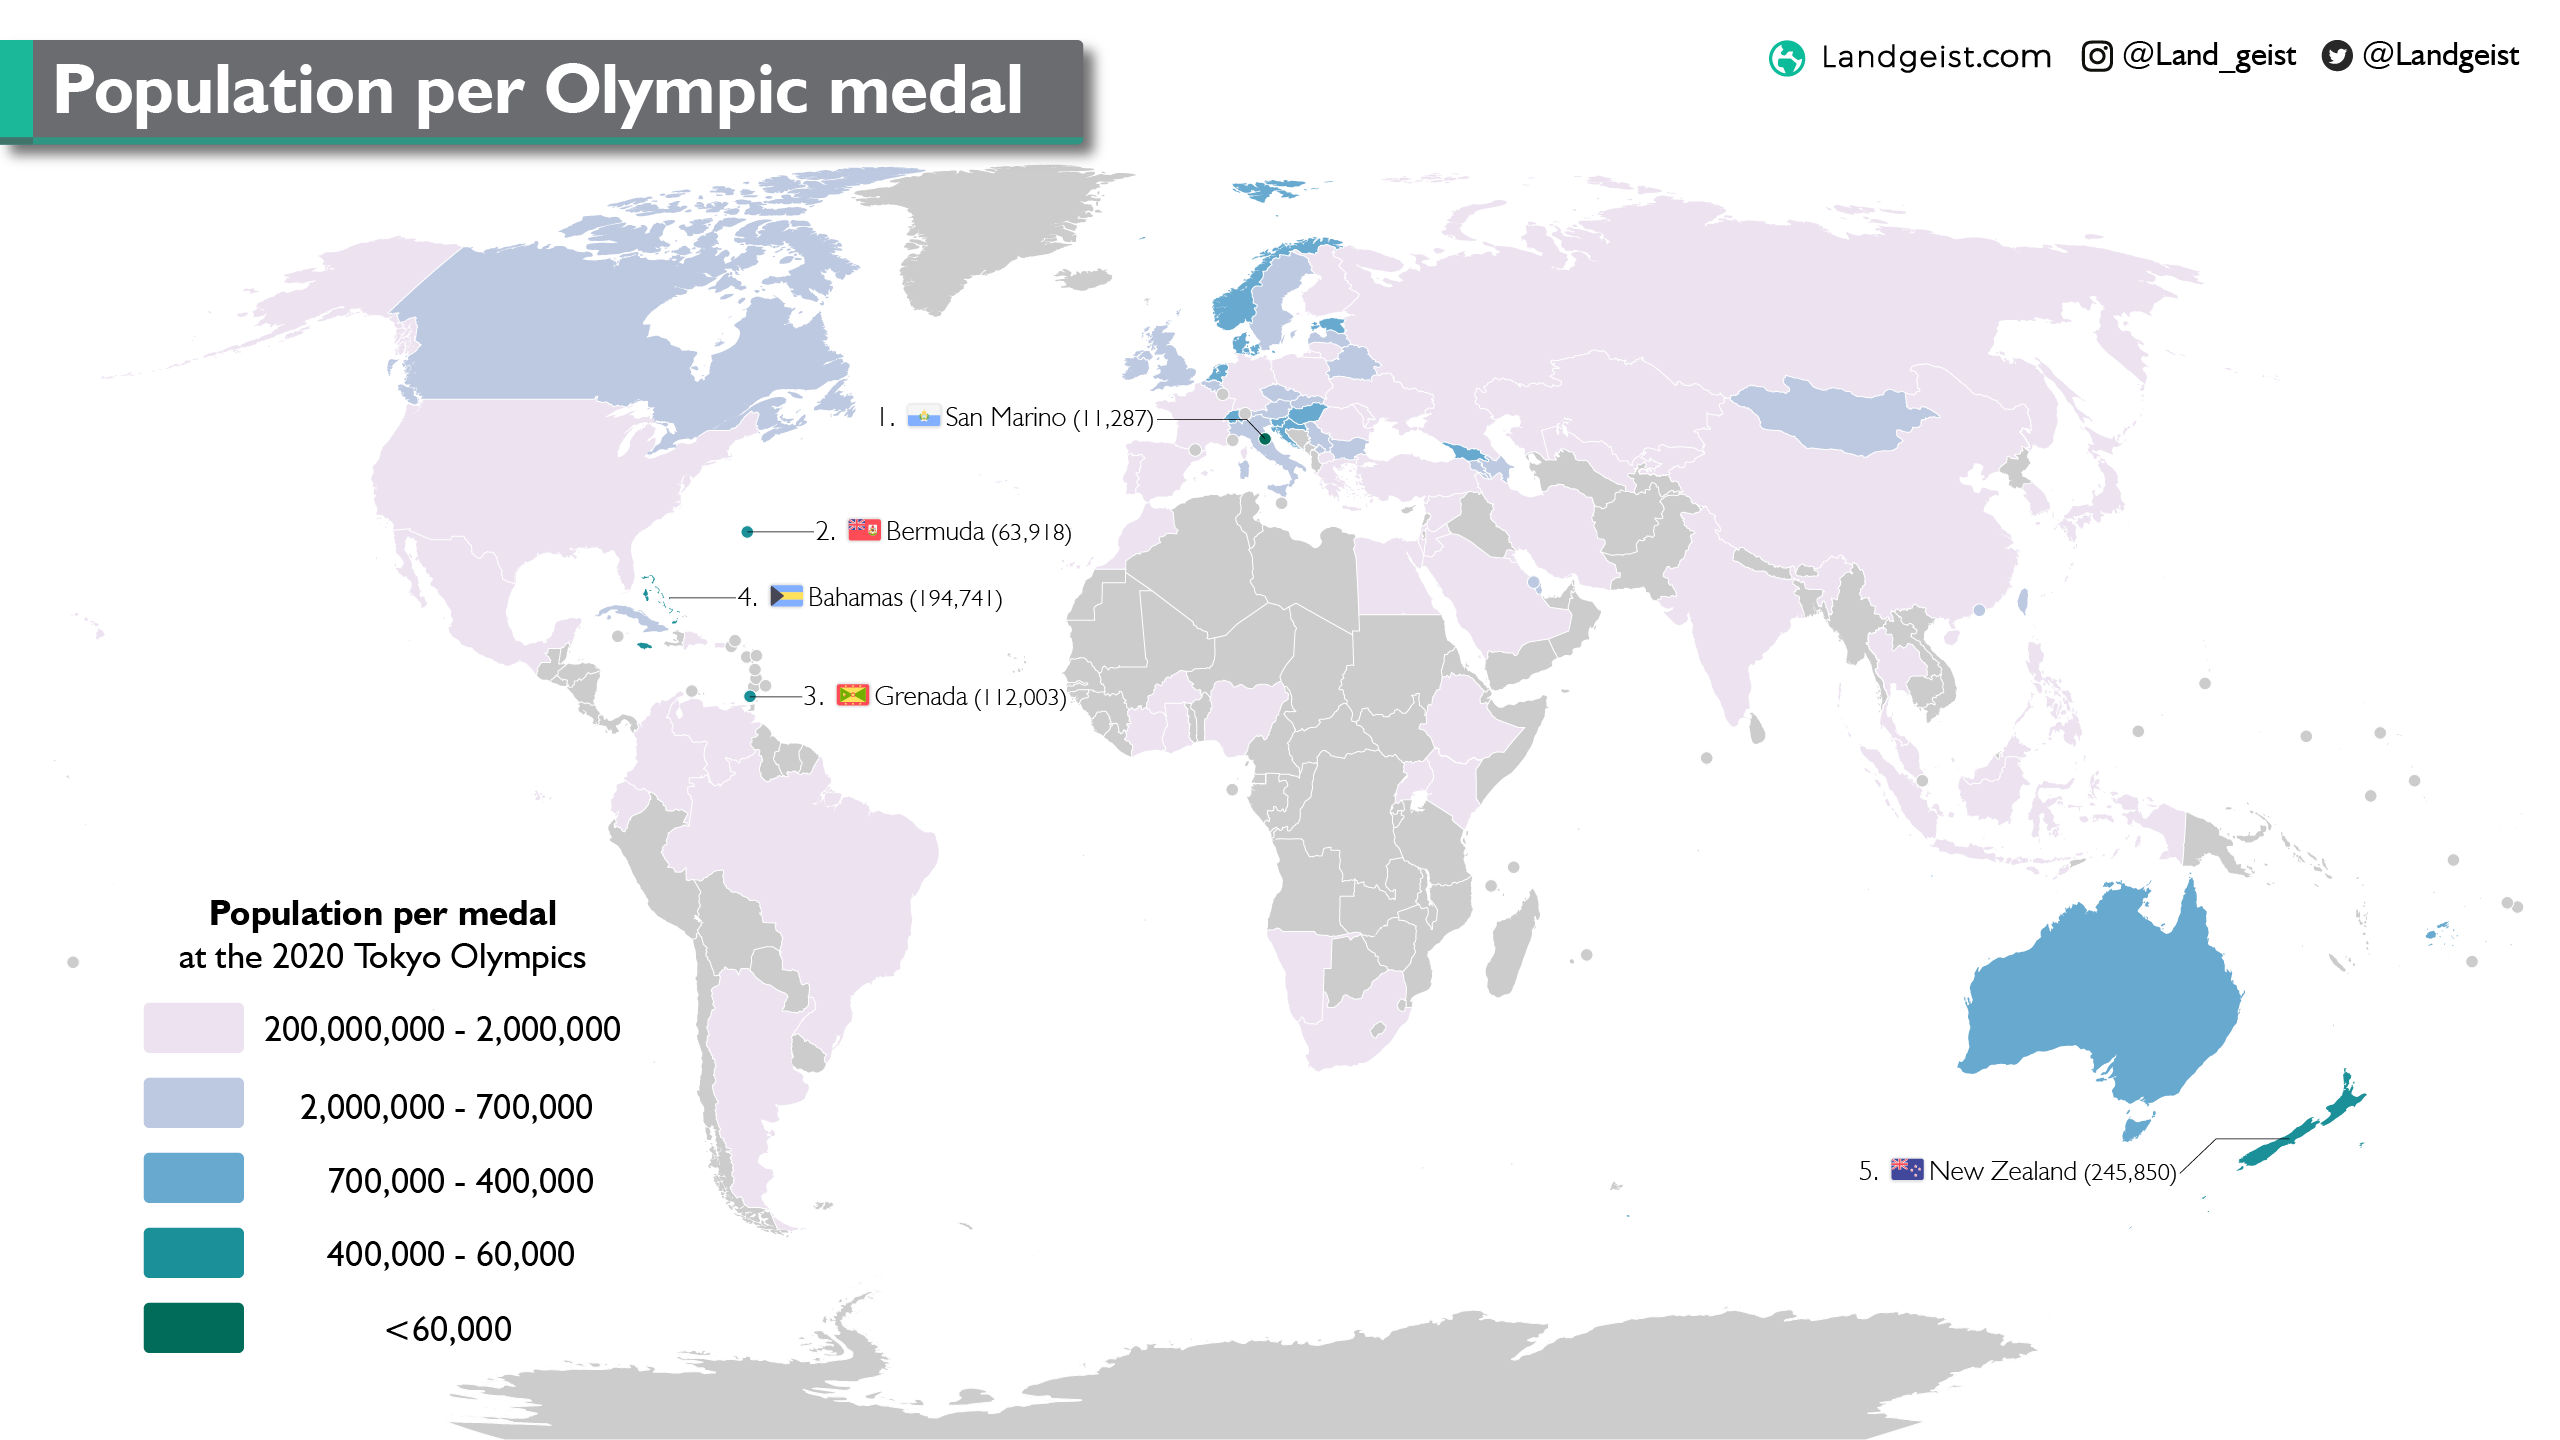 Map of the population per medal per country at 2020 Tokyo Olympic Games